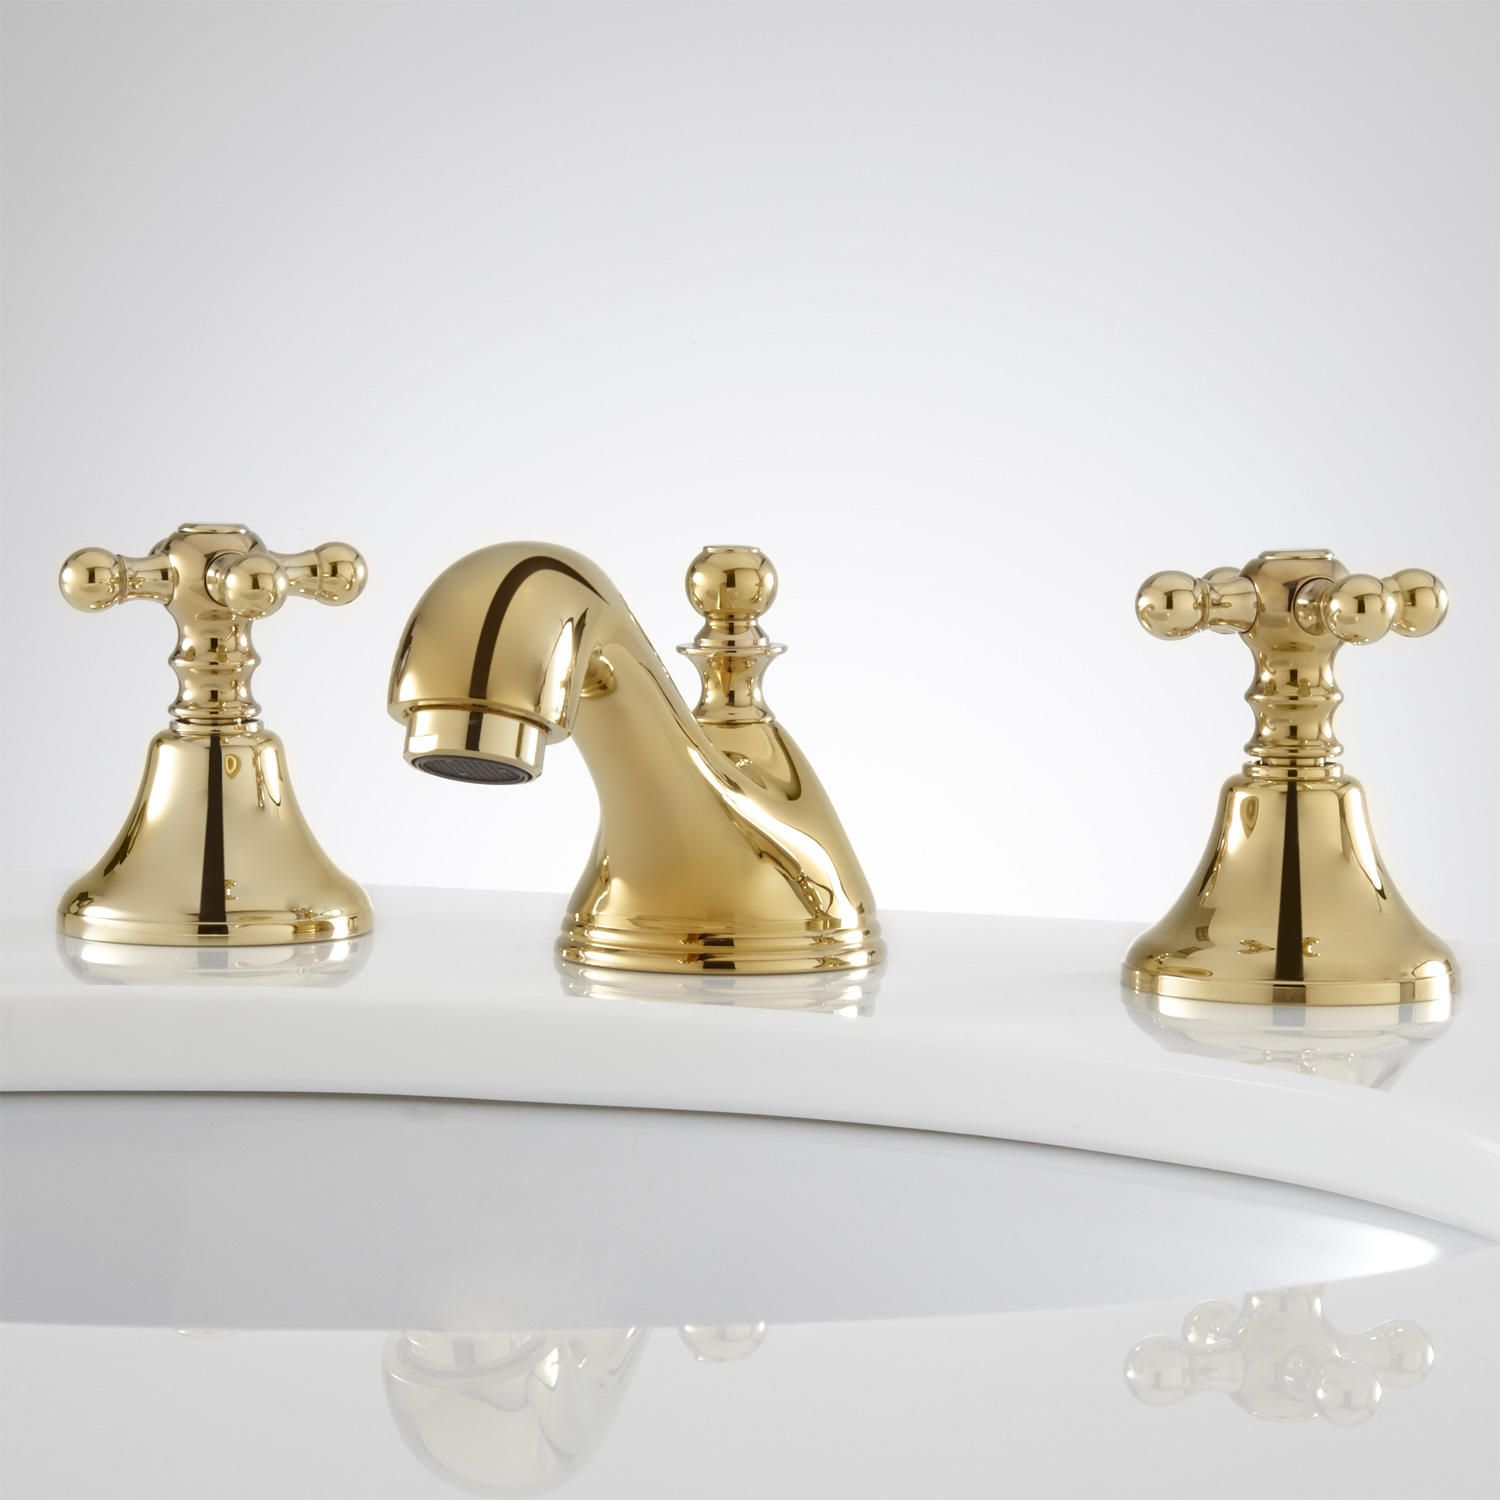 Messing Bad, Badarmaturen, Badezimmer, Überlauf, Öl Eingerieben Bronze,  Widespread Bathroom Faucet, Polished Brass, Frances Ou0027connor, Product Ideas